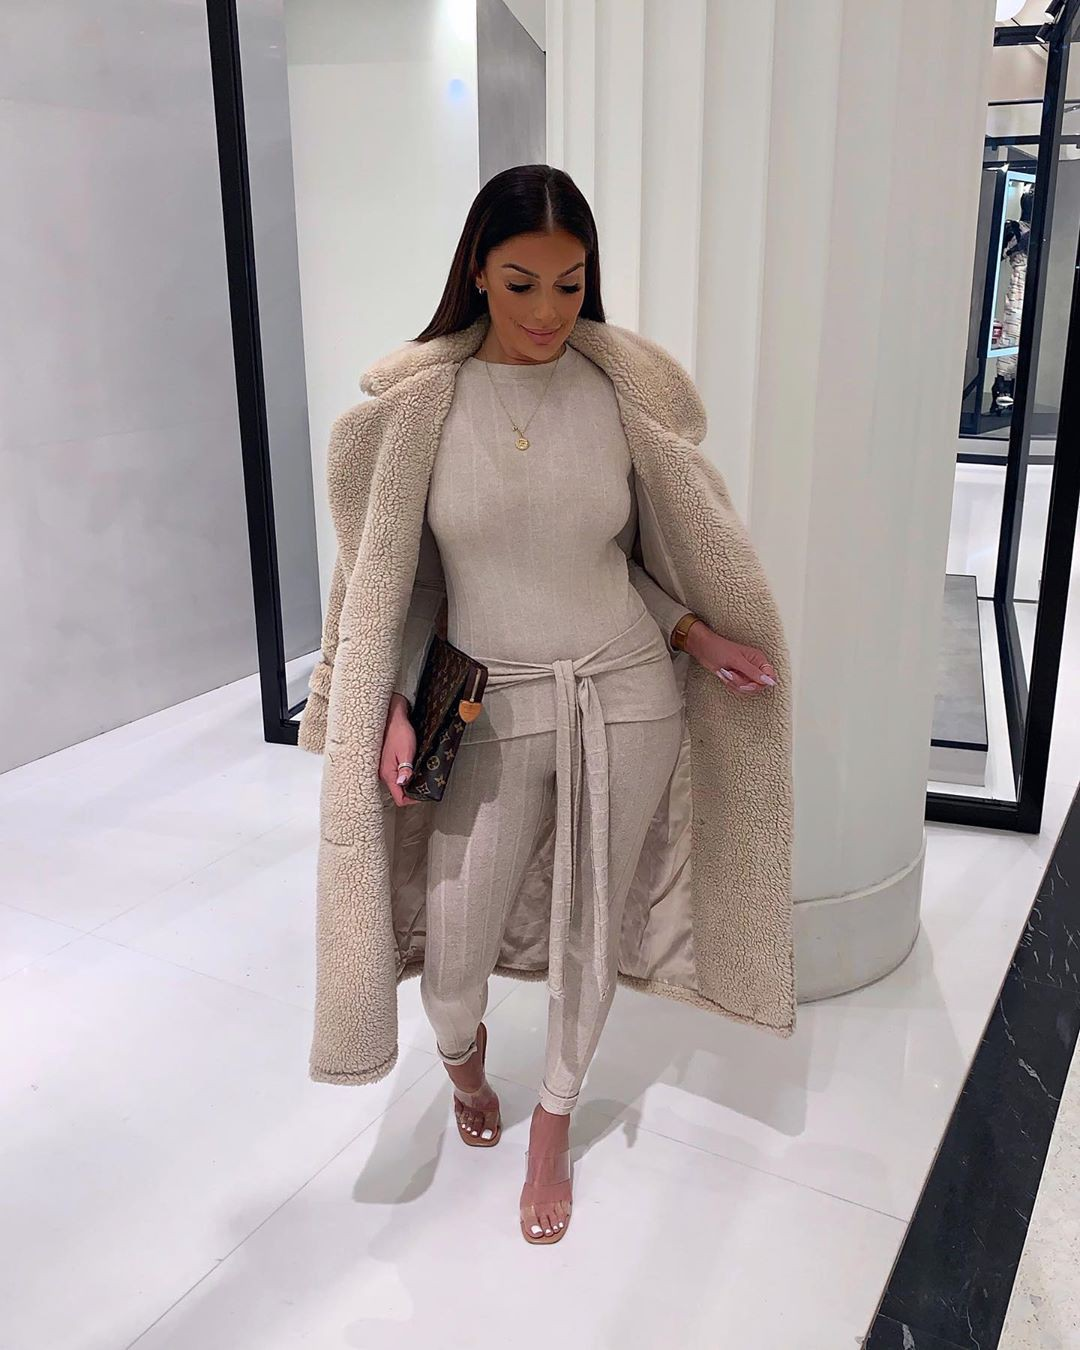 beige colour outfit with fur trench coat, overcoat, coat